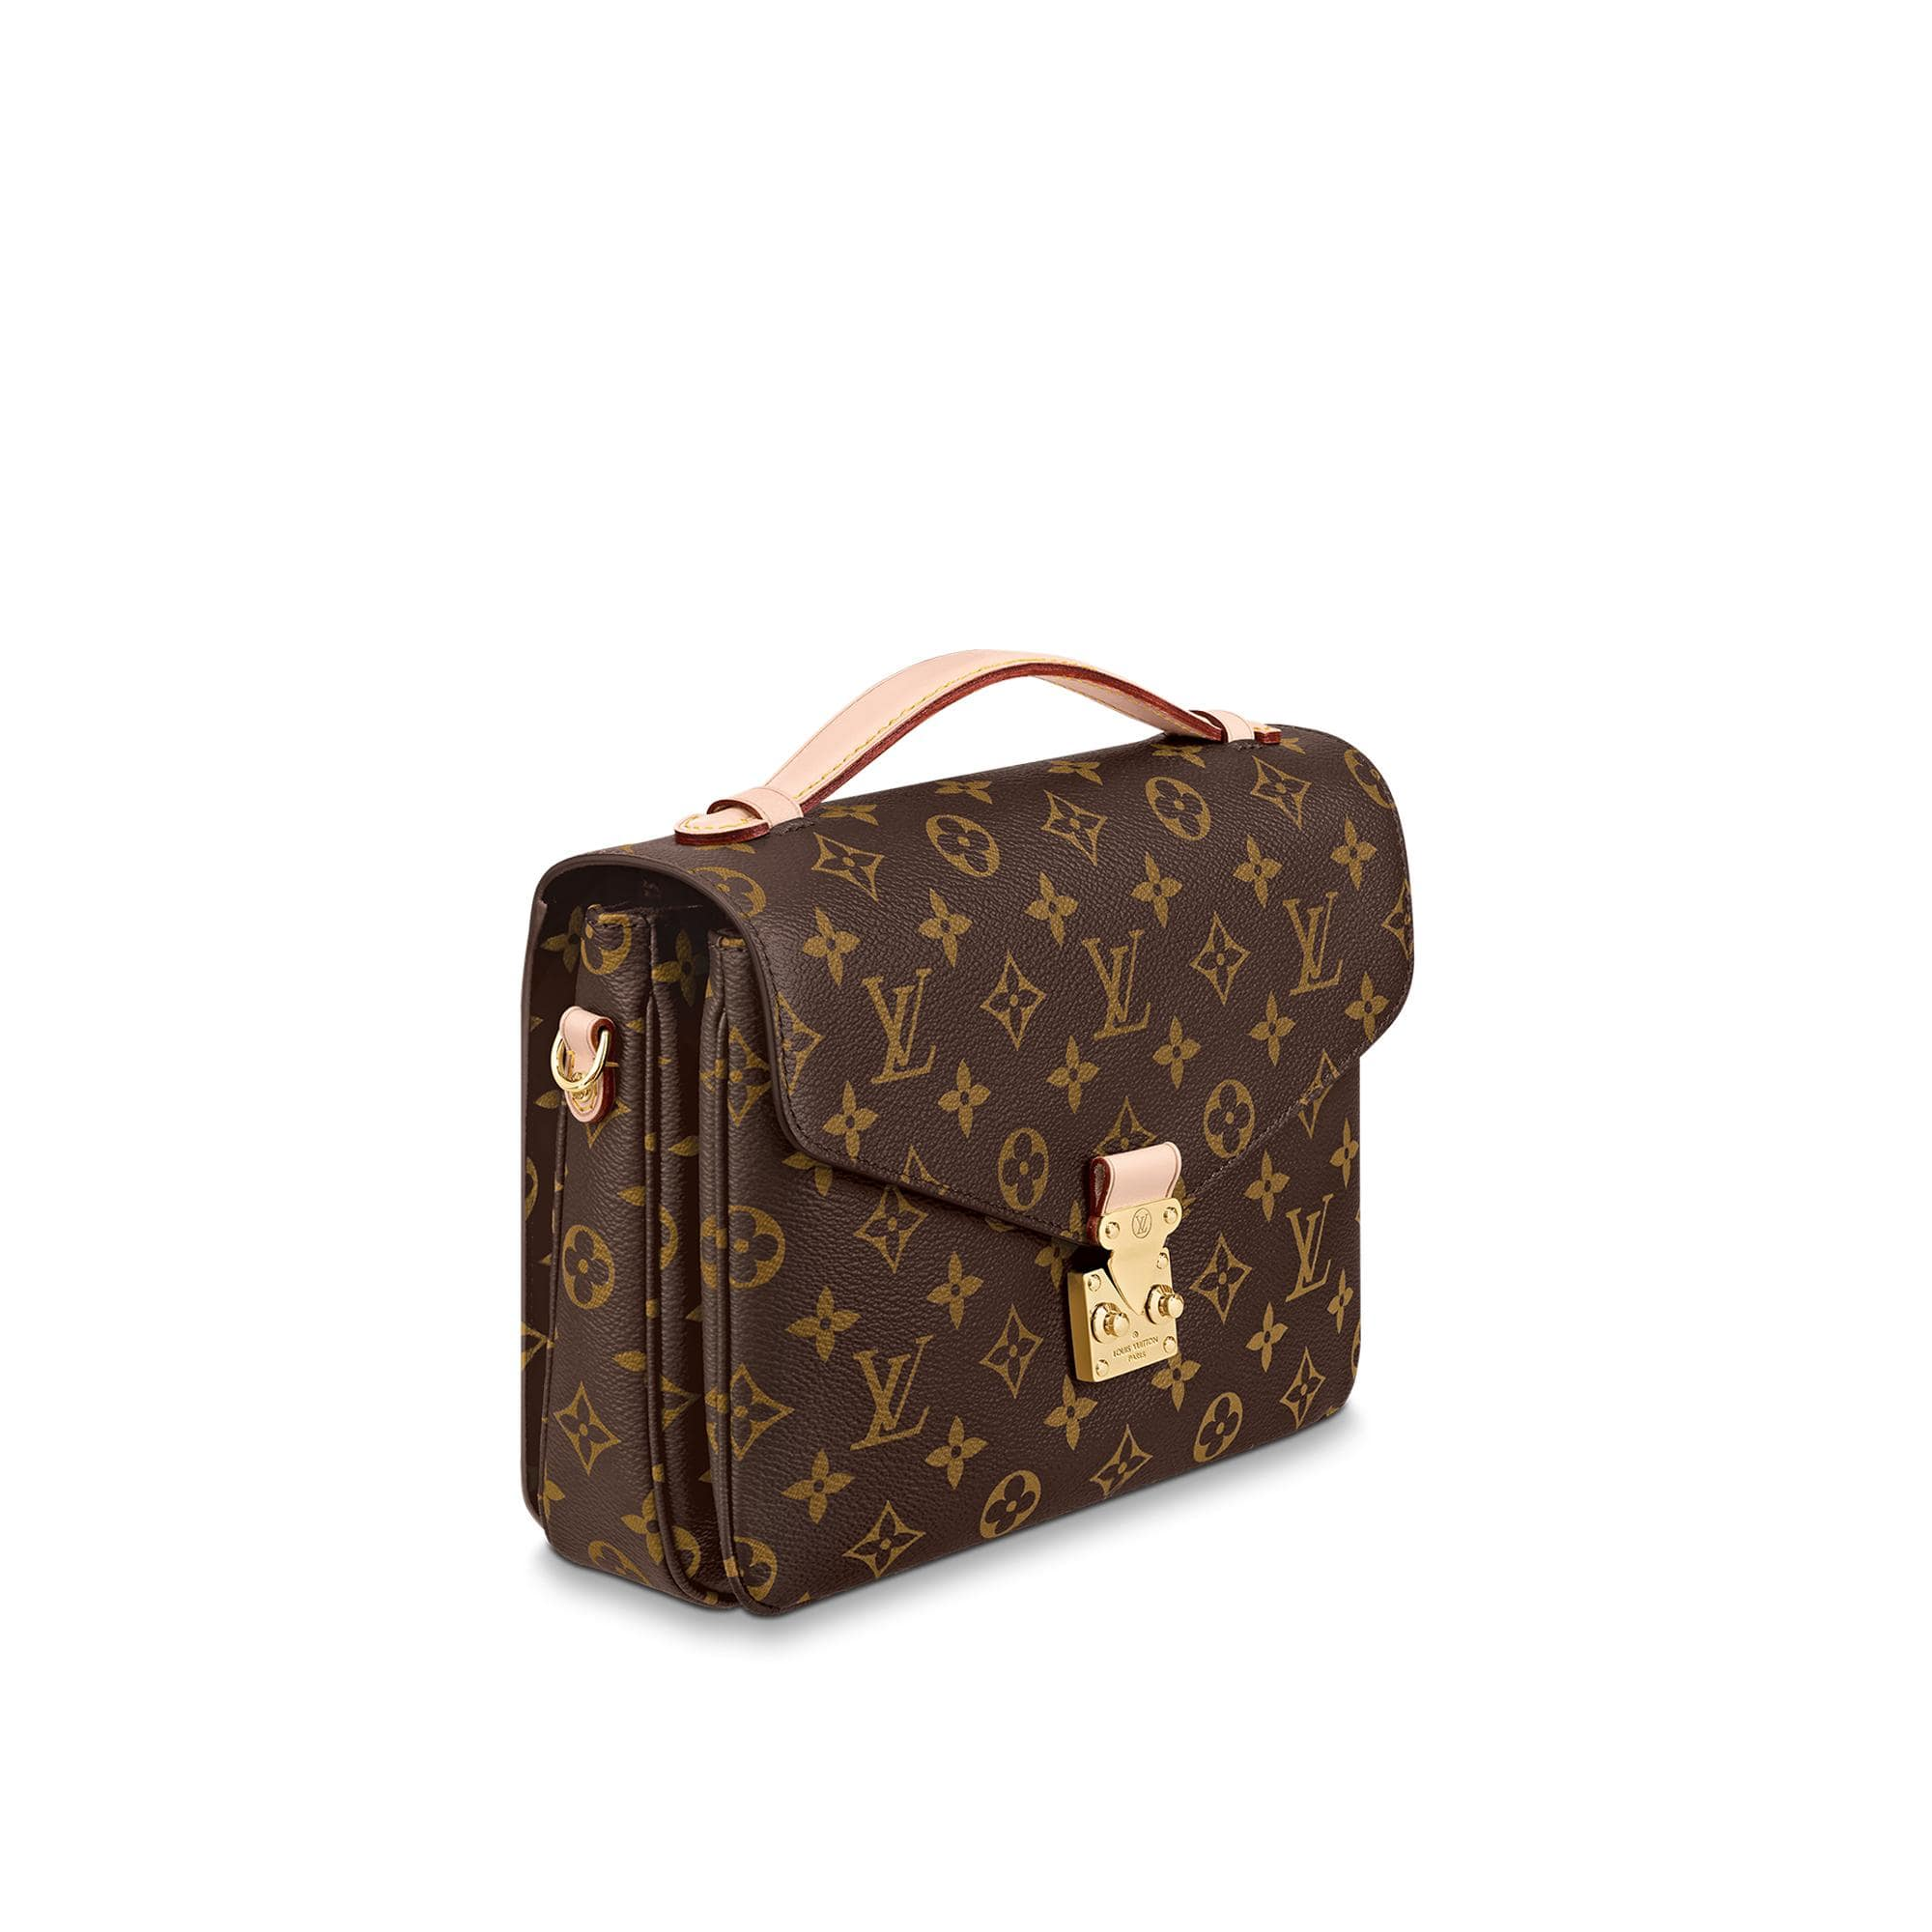 louis vuitton pochette metis - This style is a fairly new classic for LV but I included it because of the classic design and versatility. The pattern of top handle and cross-body strap continues and gives this bag the functionality win over other LV bags. The monogram print will ensure it never dates but you can also get this style in various color options. Retail $1,830